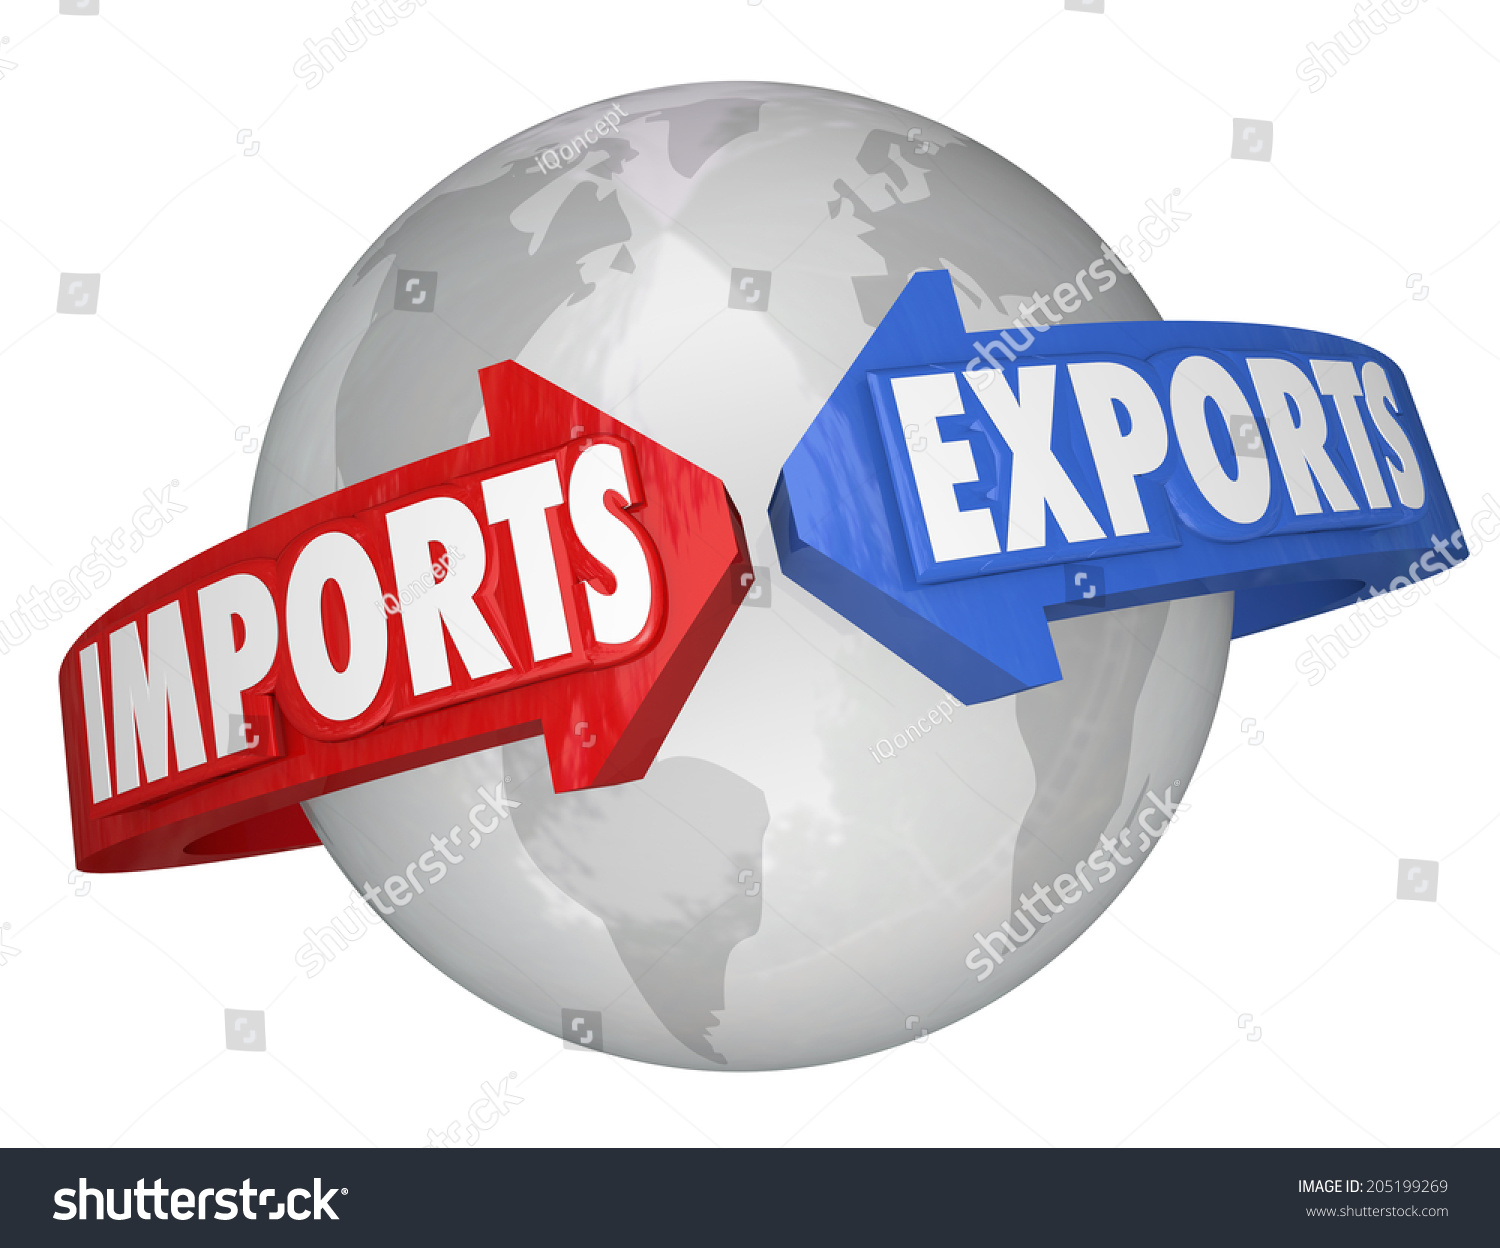 Imports Exports Words Arrows Earth International Stock ...